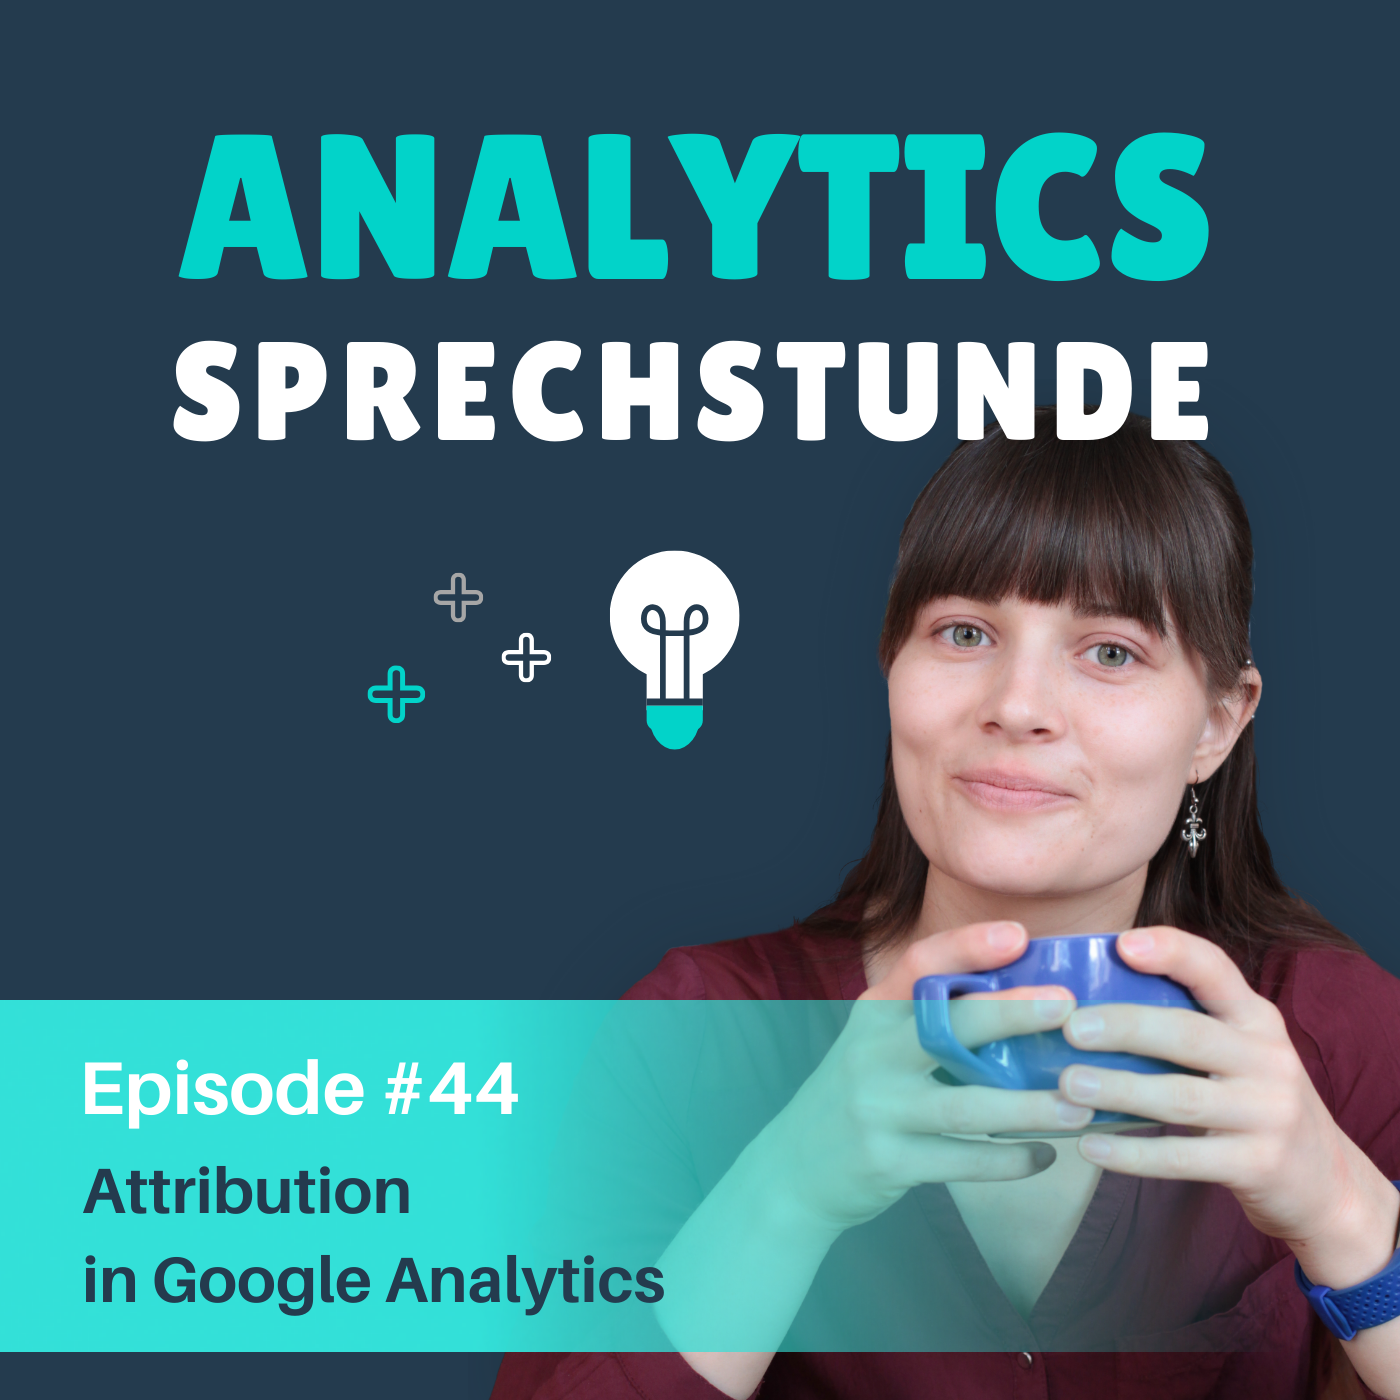 44 Attribution in Google Analytics